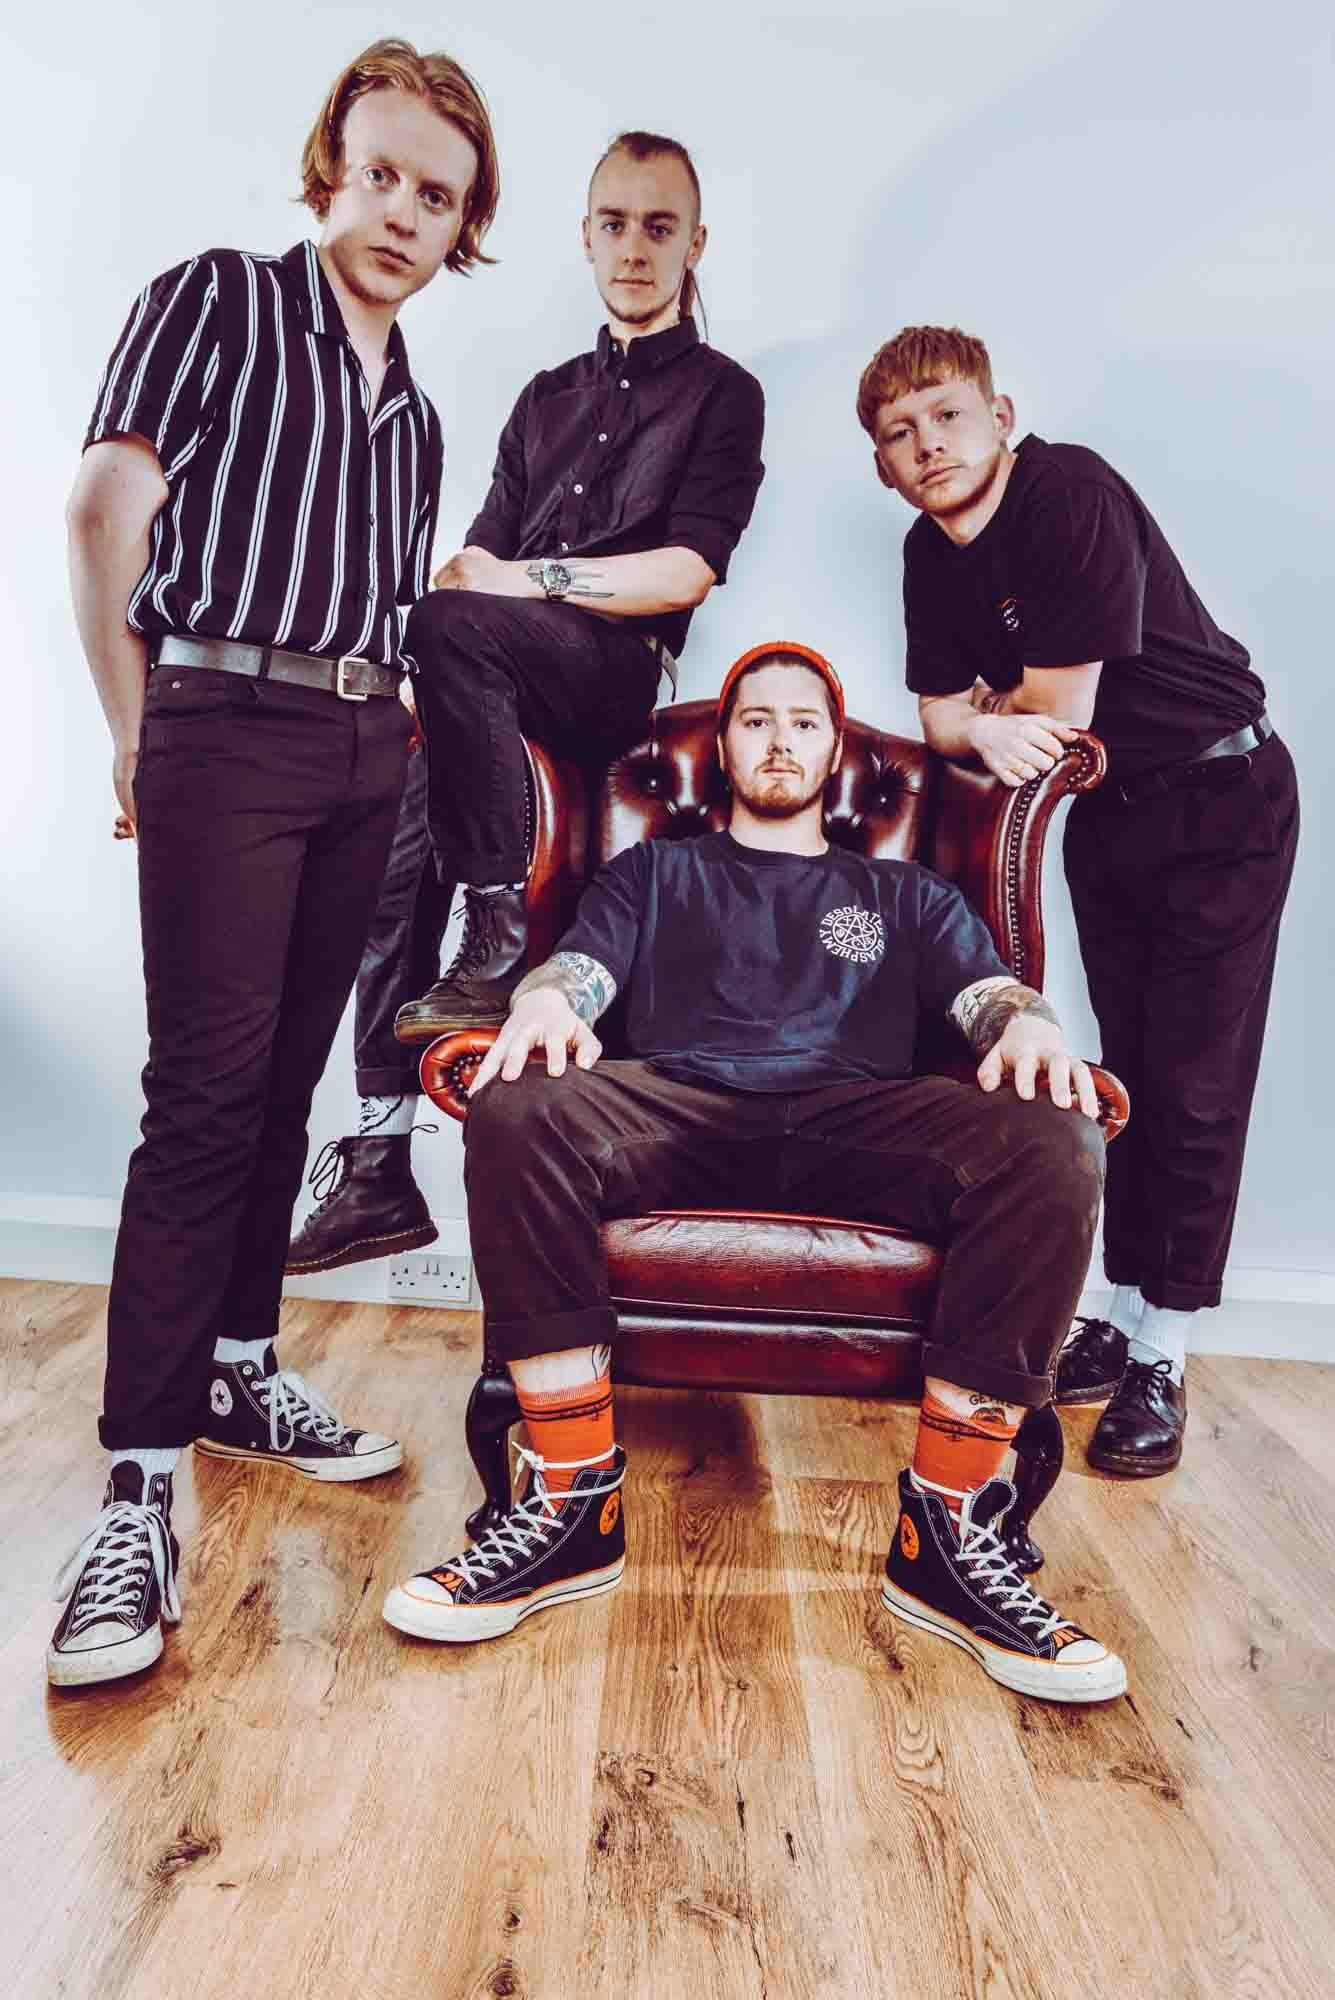 Local band GETRZ delight at support from Swindon Town